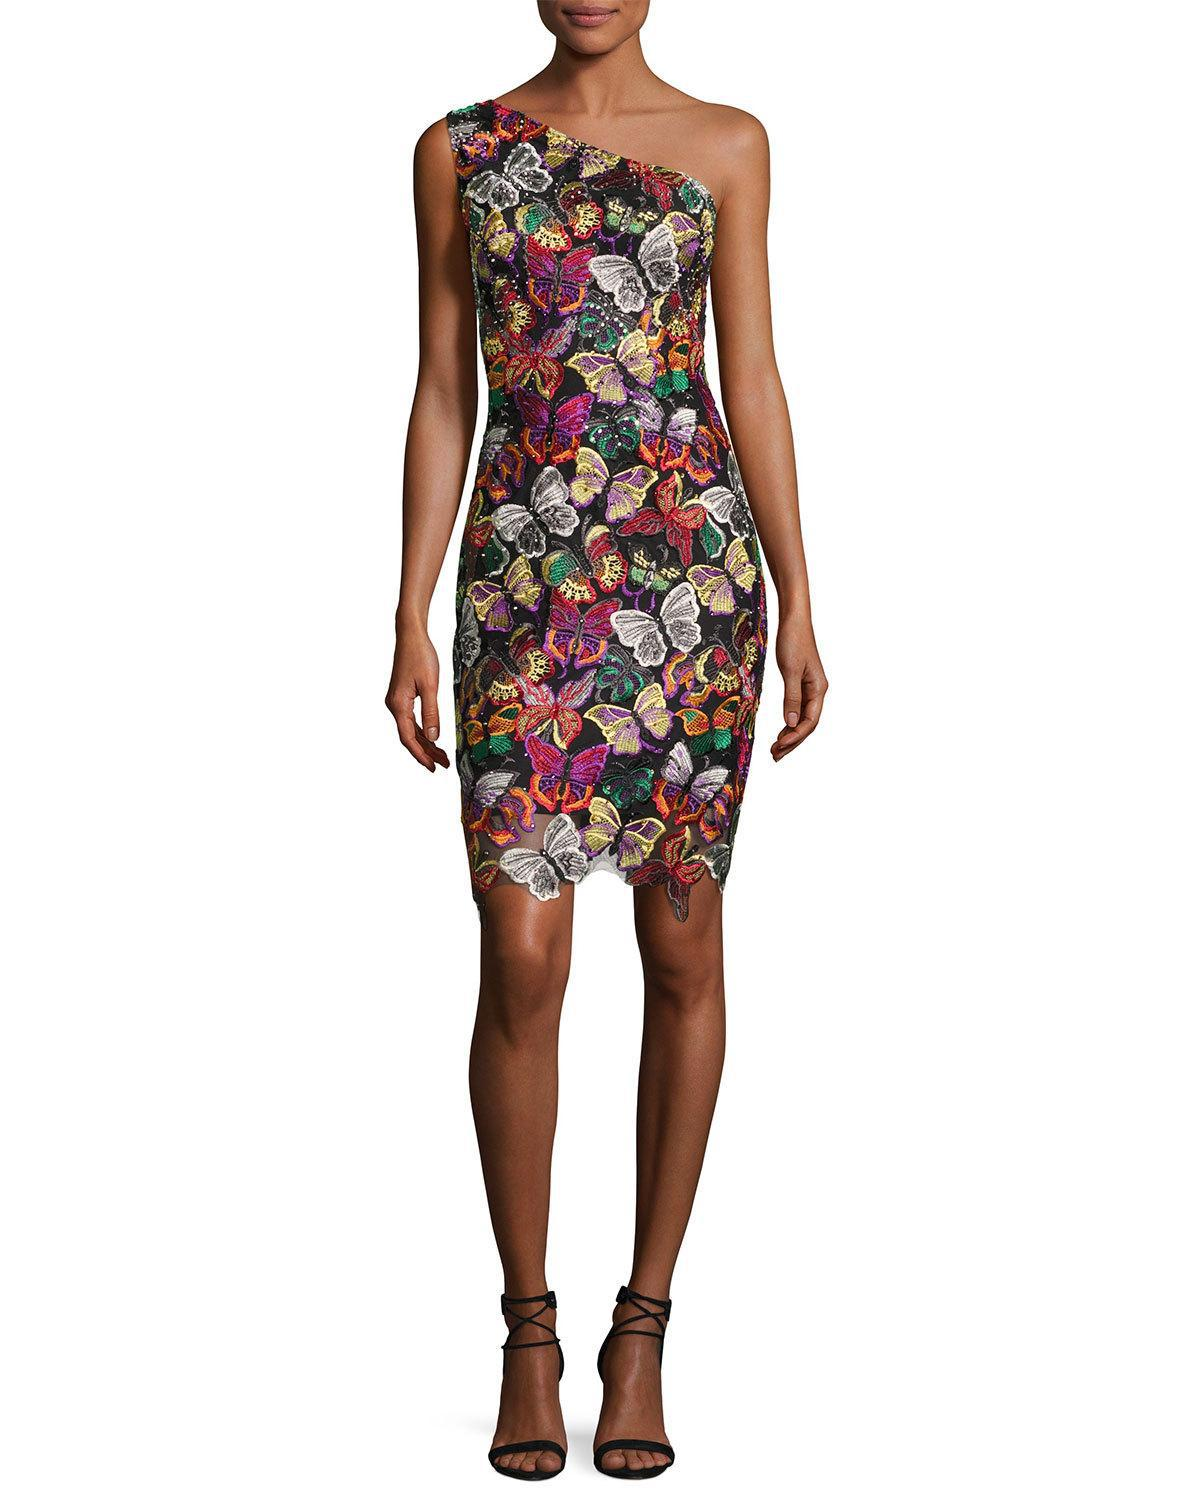 0f13a3ab14 Lyst - Jovani One-shoulder Beaded Butterfly Cocktail Dress